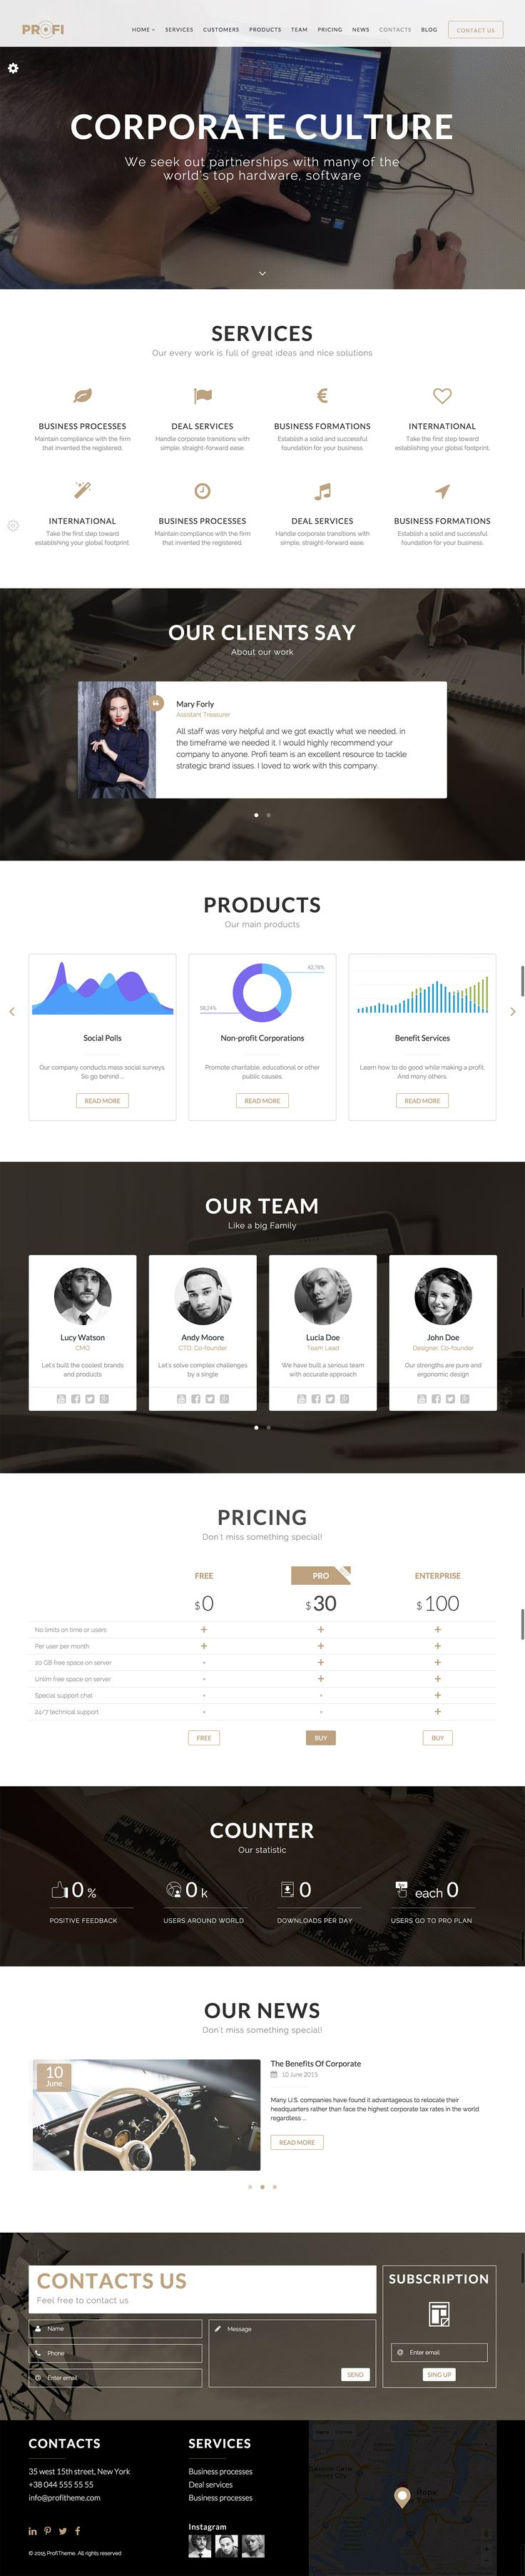 Profi WP will perfectly suit the needs of any modern agency, small and medium business, startup, corporate or personal portfolio. Will fit great on all type of devices: desktop, tablet, mobile phone… - Download theme here : http://themeforest.net/item/profi-business-professional-wordpress-theme/14873668?ref=pxcr